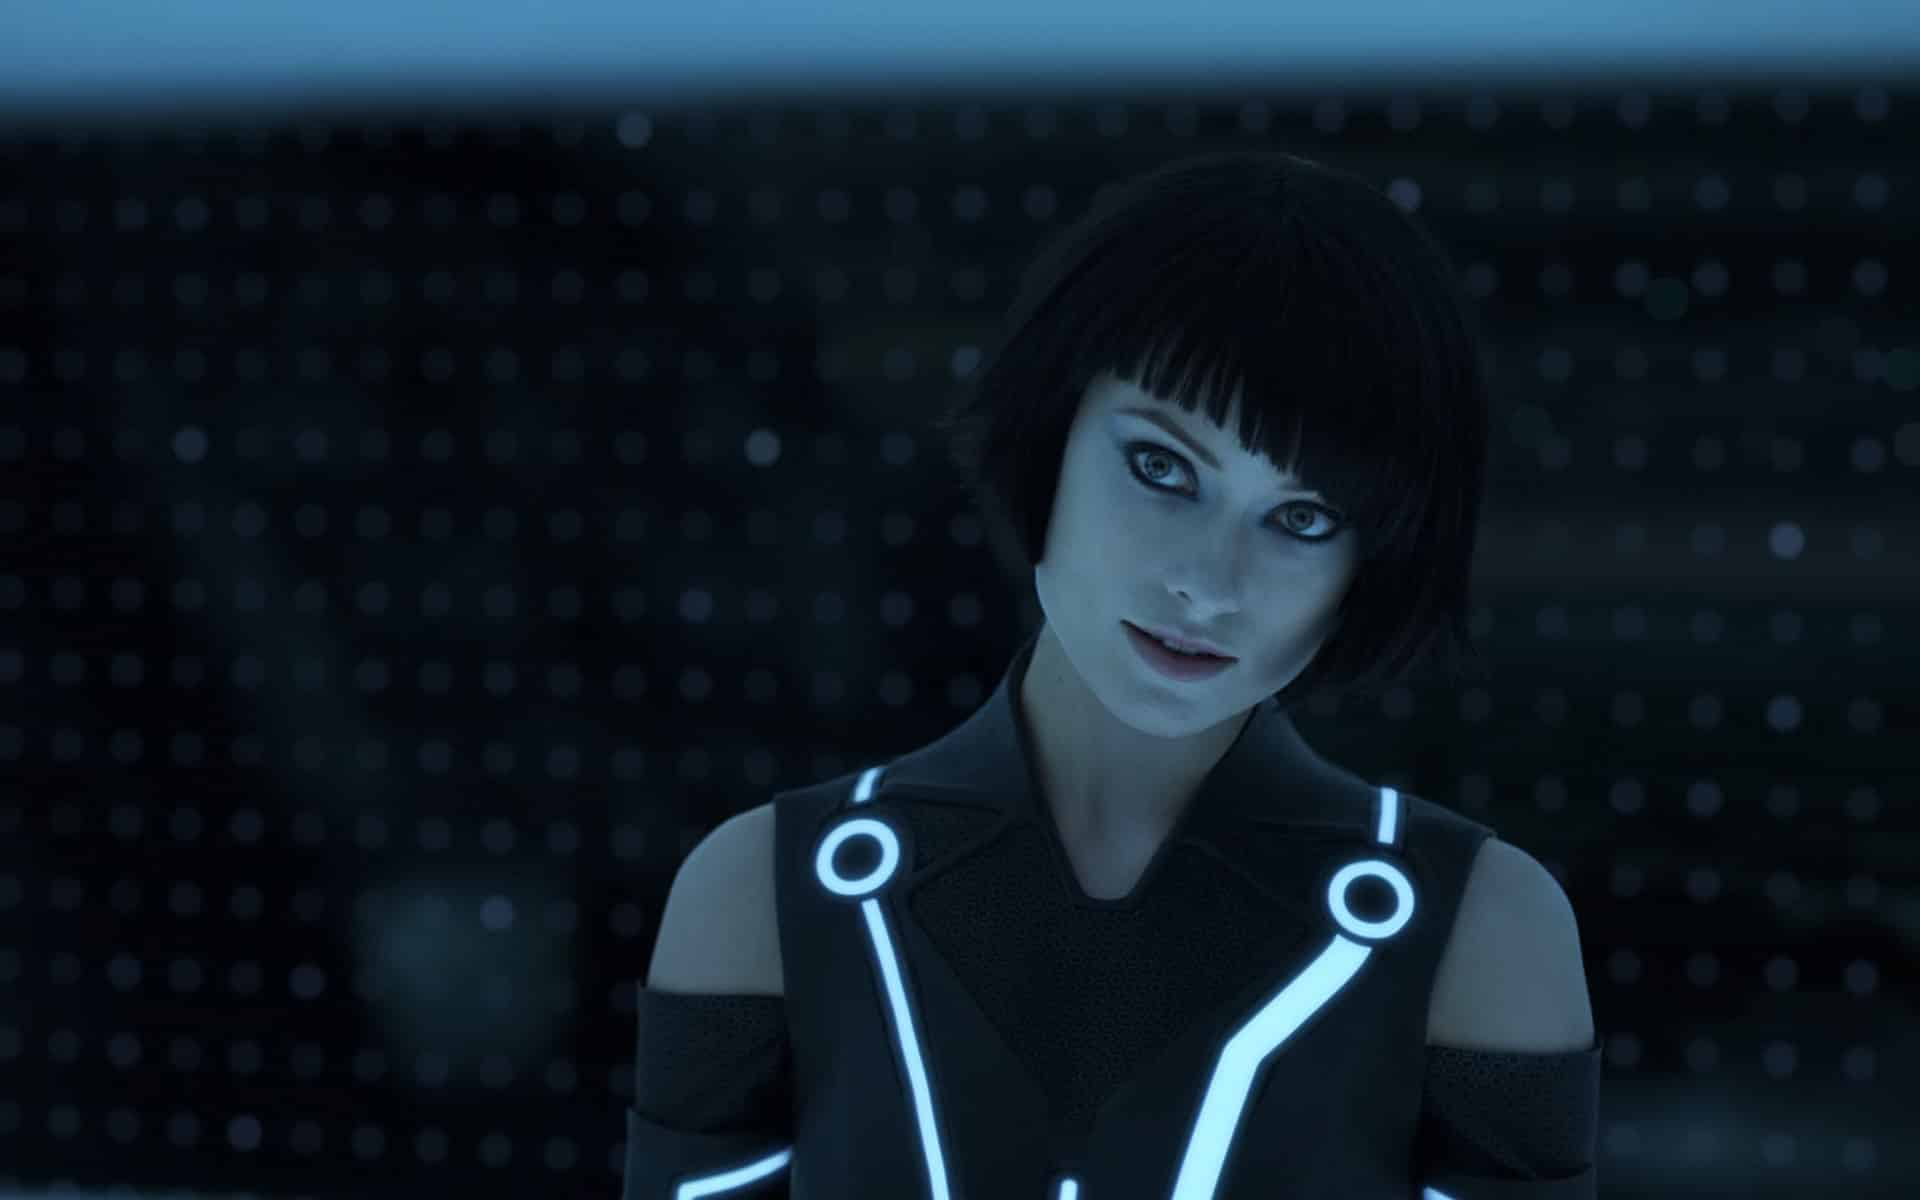 Tron: Legacy Was a Disney Princess Movie Aimed at Boys, a different approach to live-action adaptation compared to The Lion King